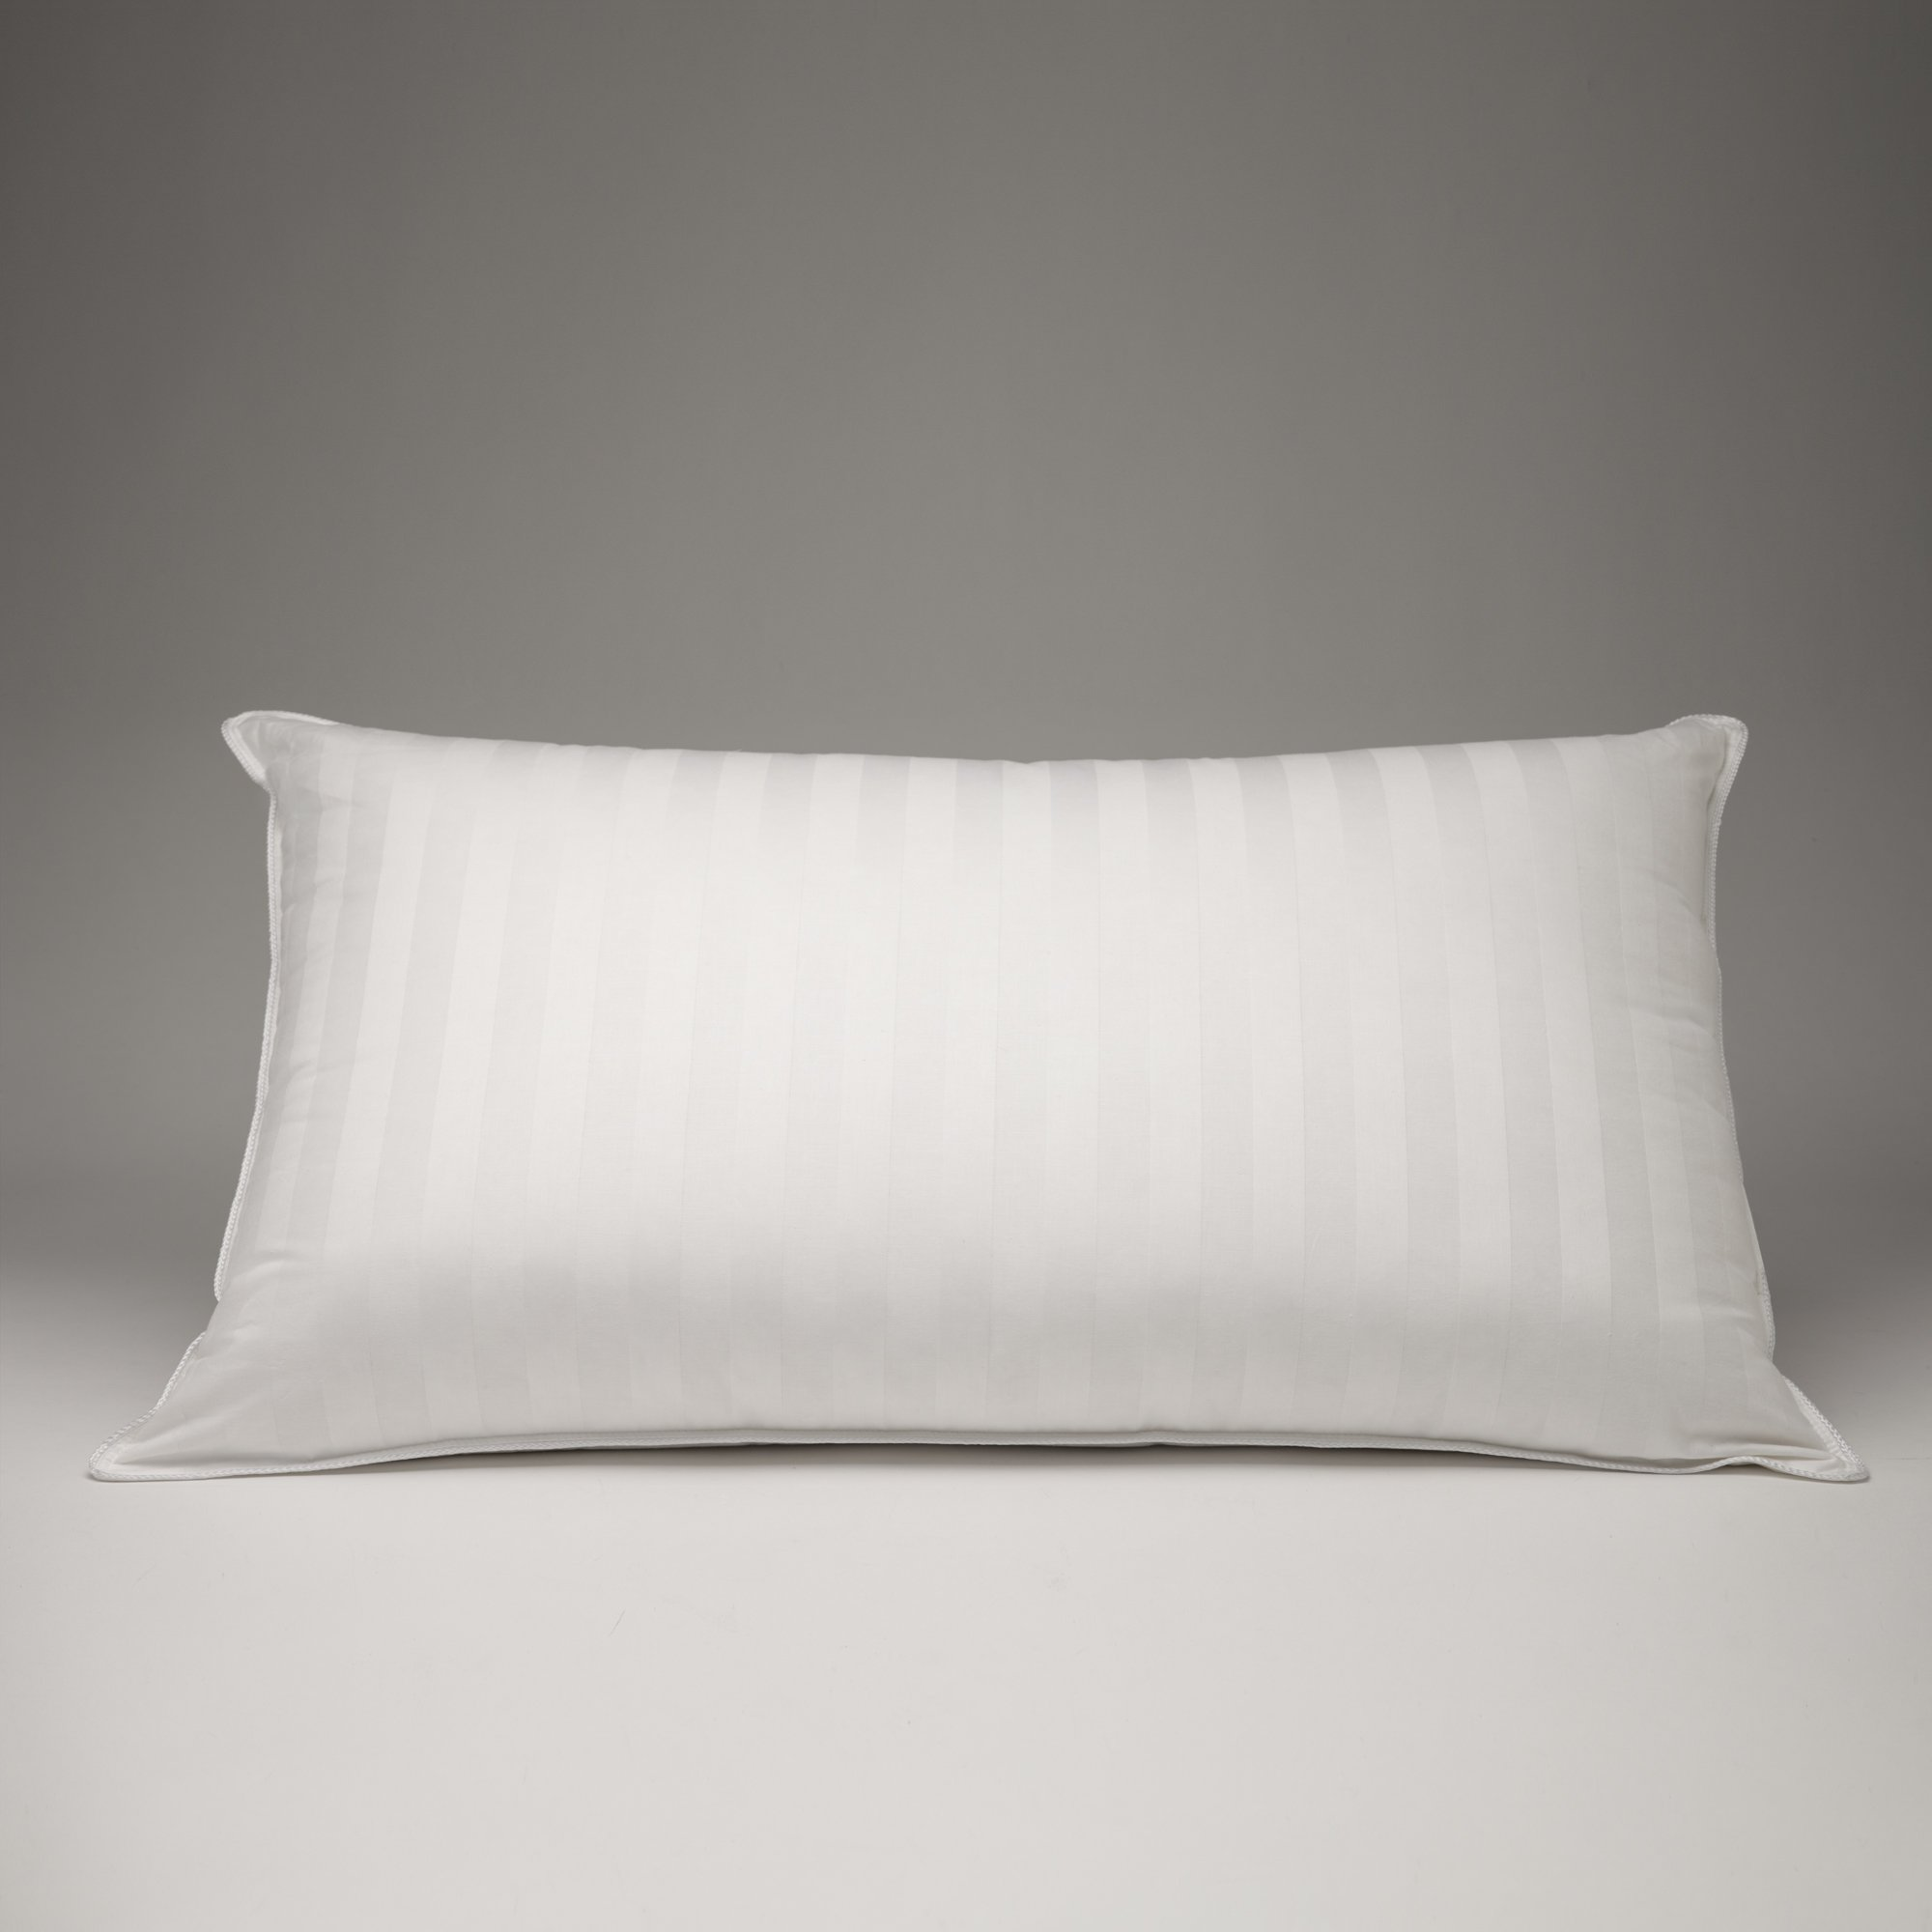 FineFeather 100% Hungarian White Goose Down Pillow, Luxury 700 Fill Power, King Size by FineFeather